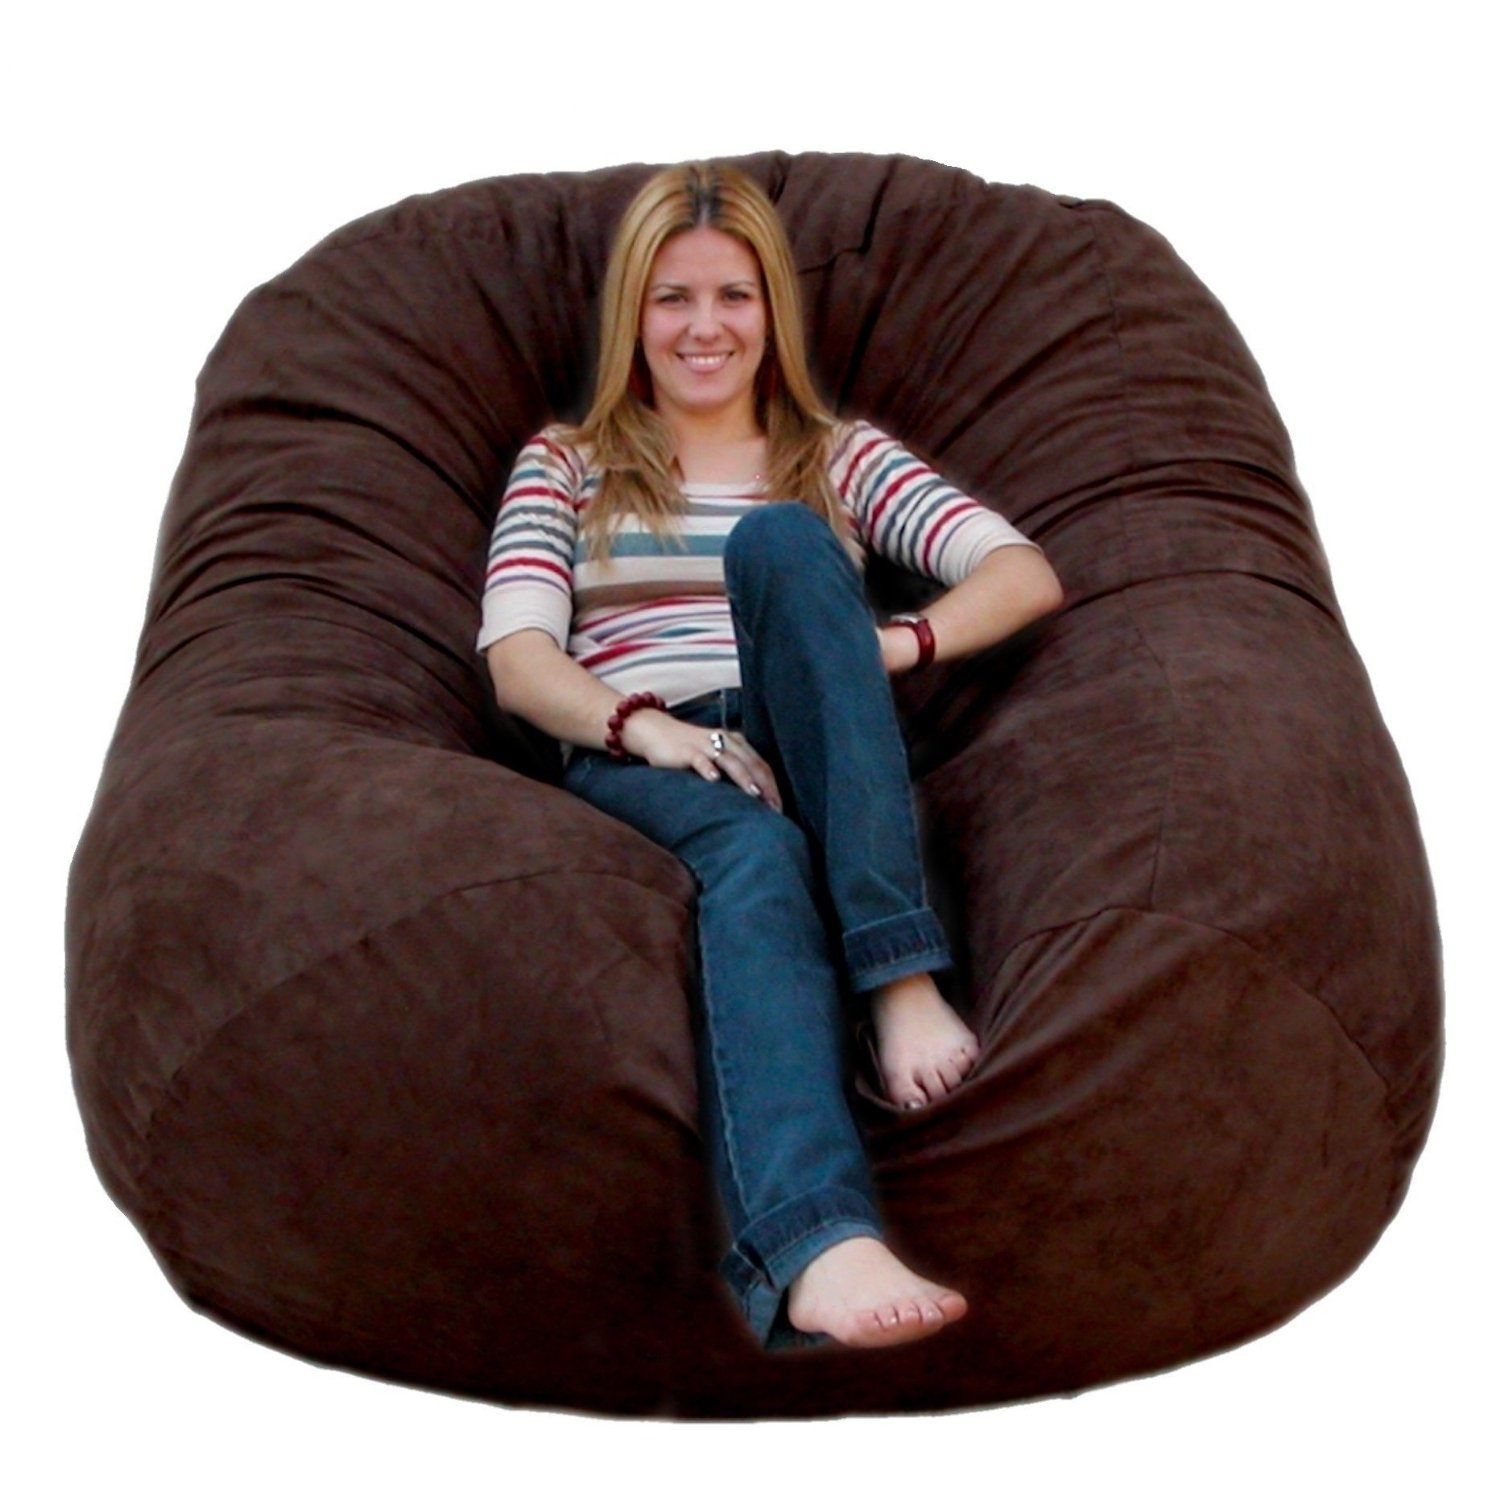 best bean bag chairs for adults ideas with images. Black Bedroom Furniture Sets. Home Design Ideas